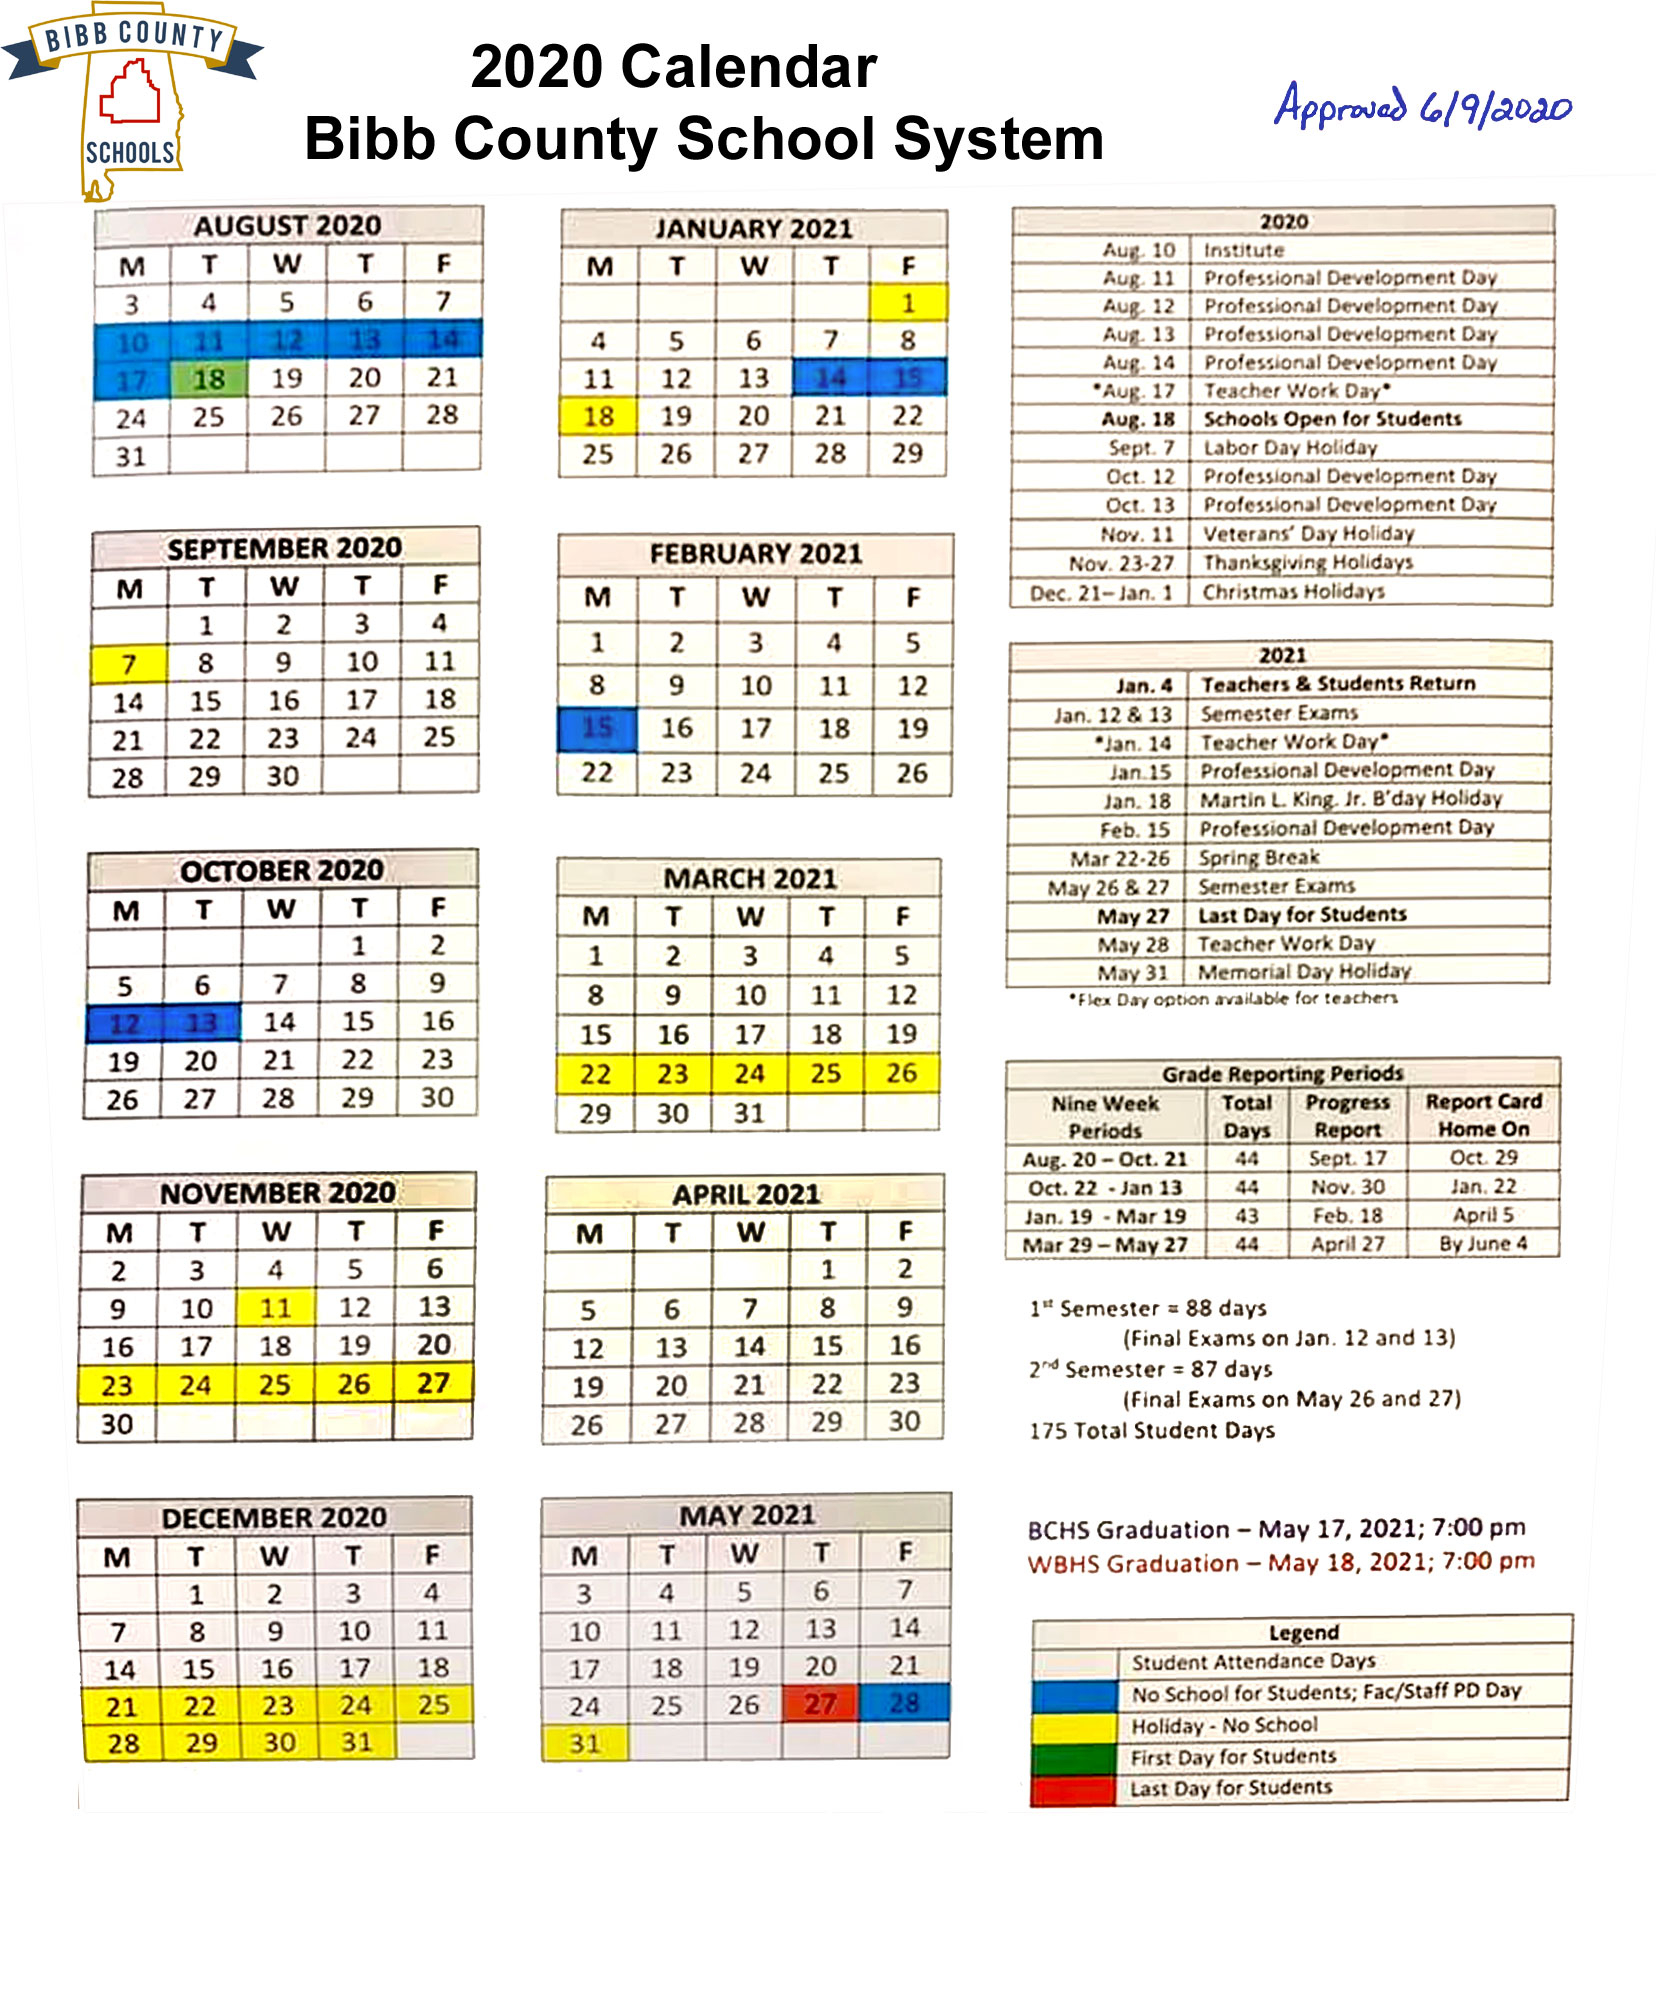 Board Of Education Approves Amended Calendar | The Bibb Voice Regarding Board Of Education Calendar